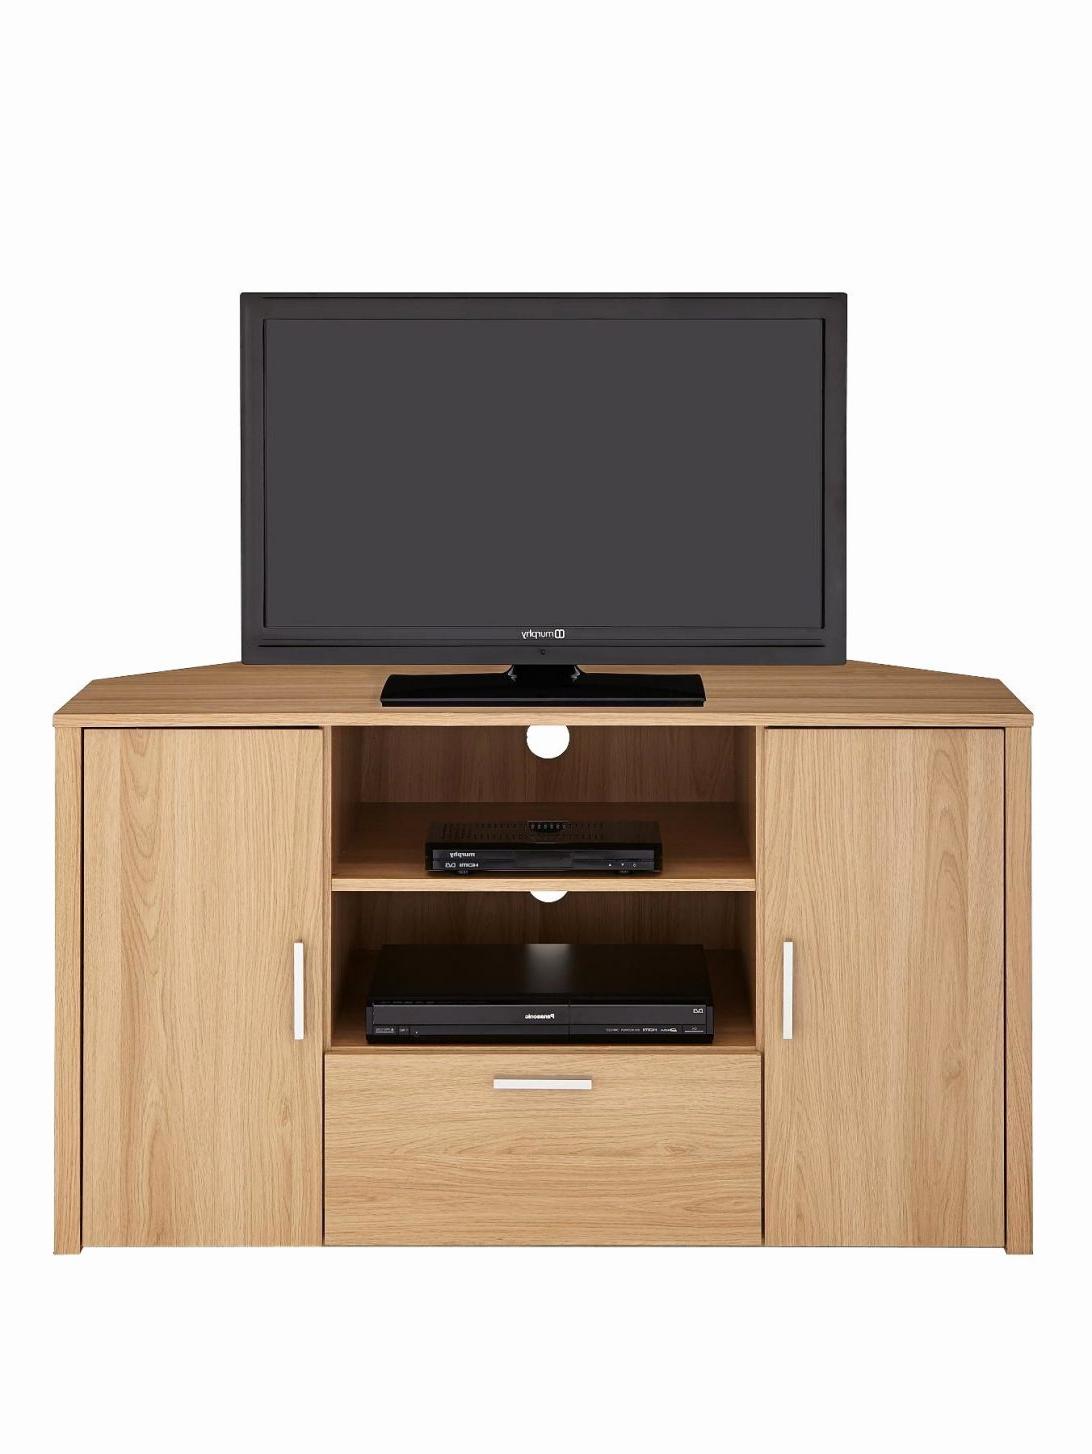 Tv Stand 100 Inch Lg Base Replacement White With Drawers 50 Regarding Most Current Large Oak Tv Stands (View 17 of 20)